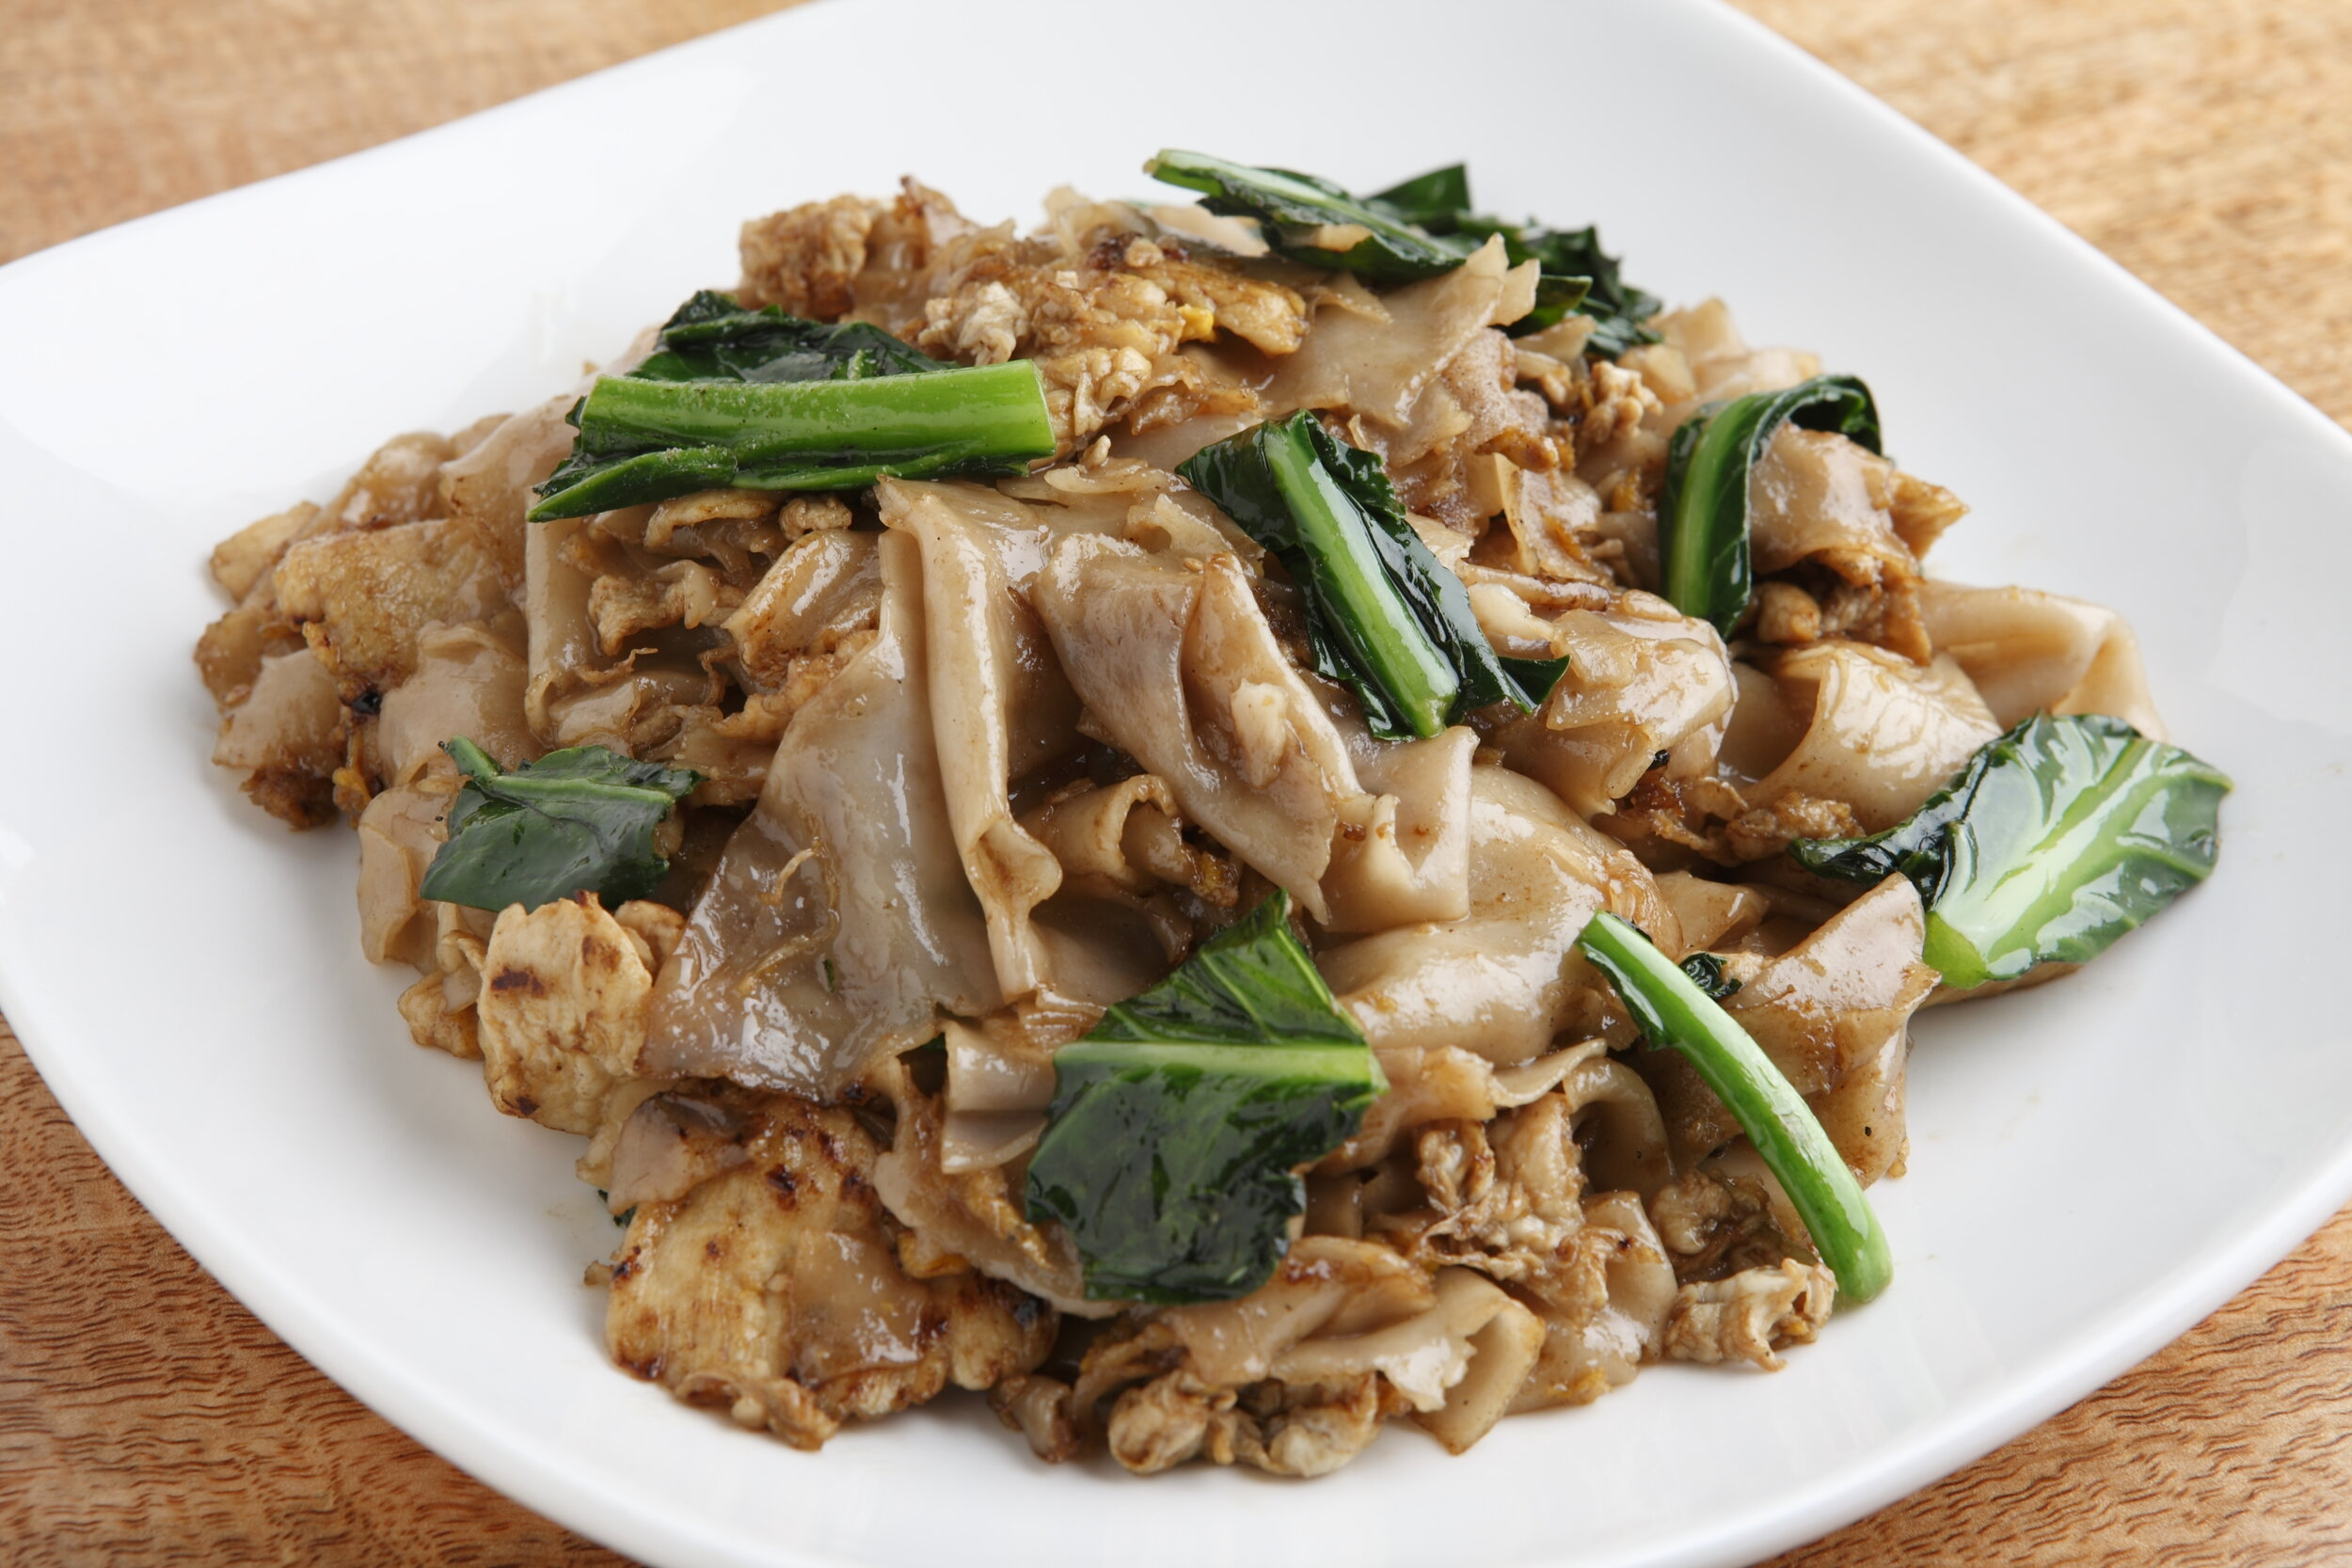 Pad Sea Eiw - Flat rice noodles sautéed with egg, Chinese broccoli and black soy sauce